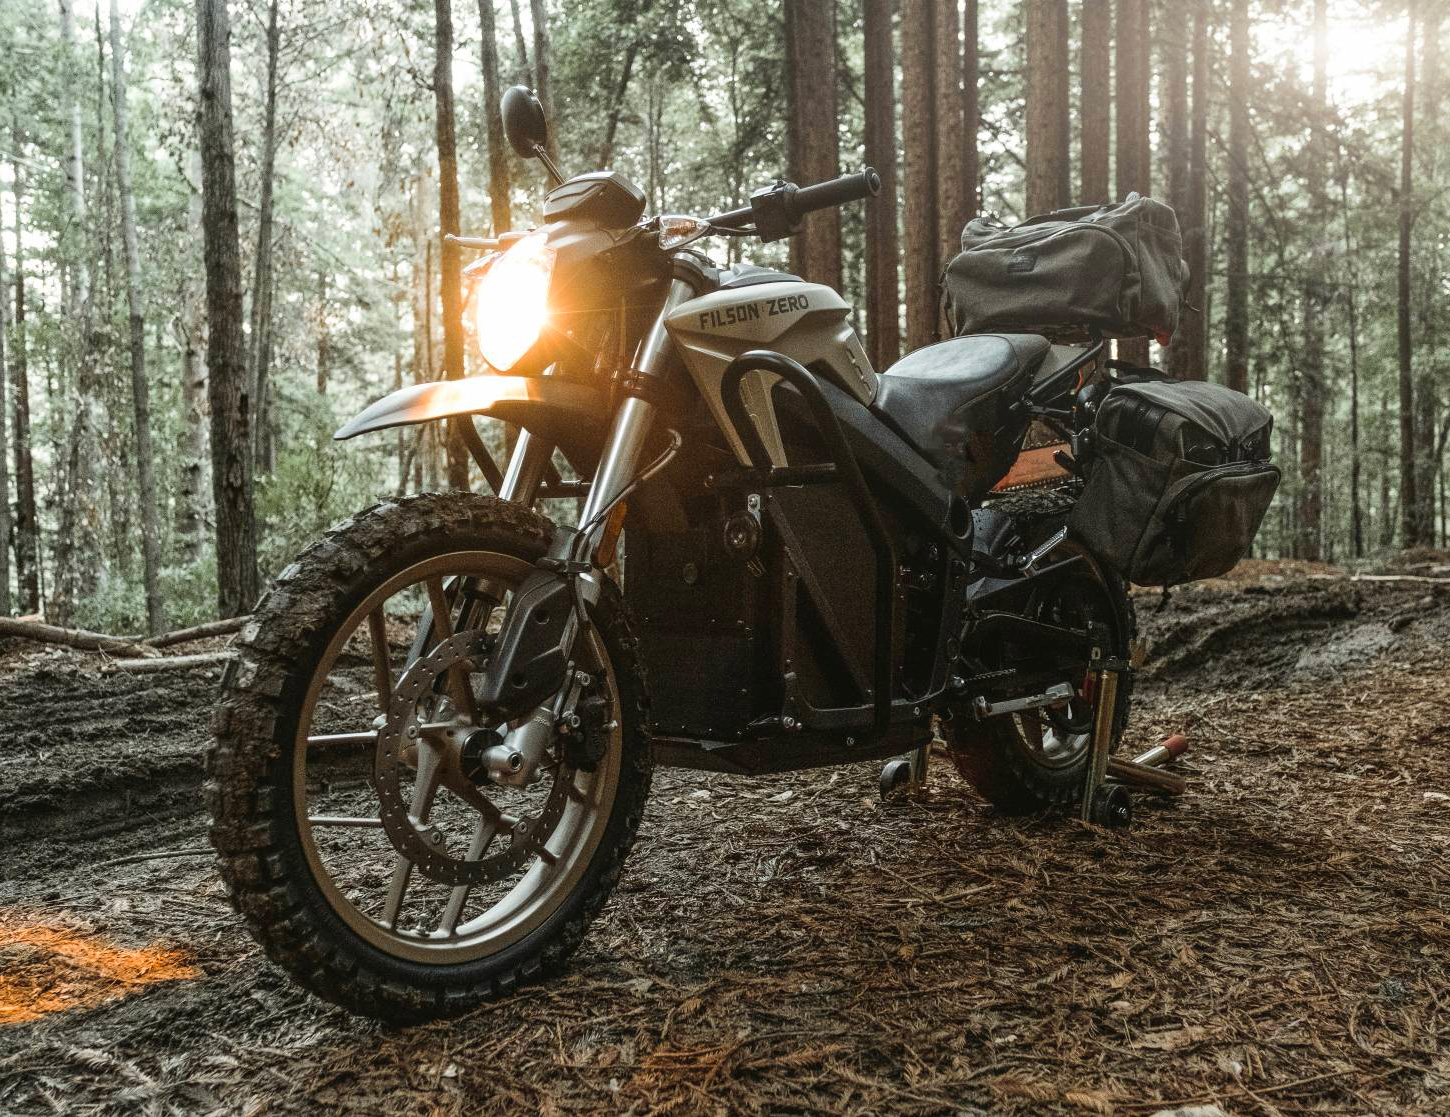 Filson Introduces Motorcycle Gear with the Alcan Collection at werd.com